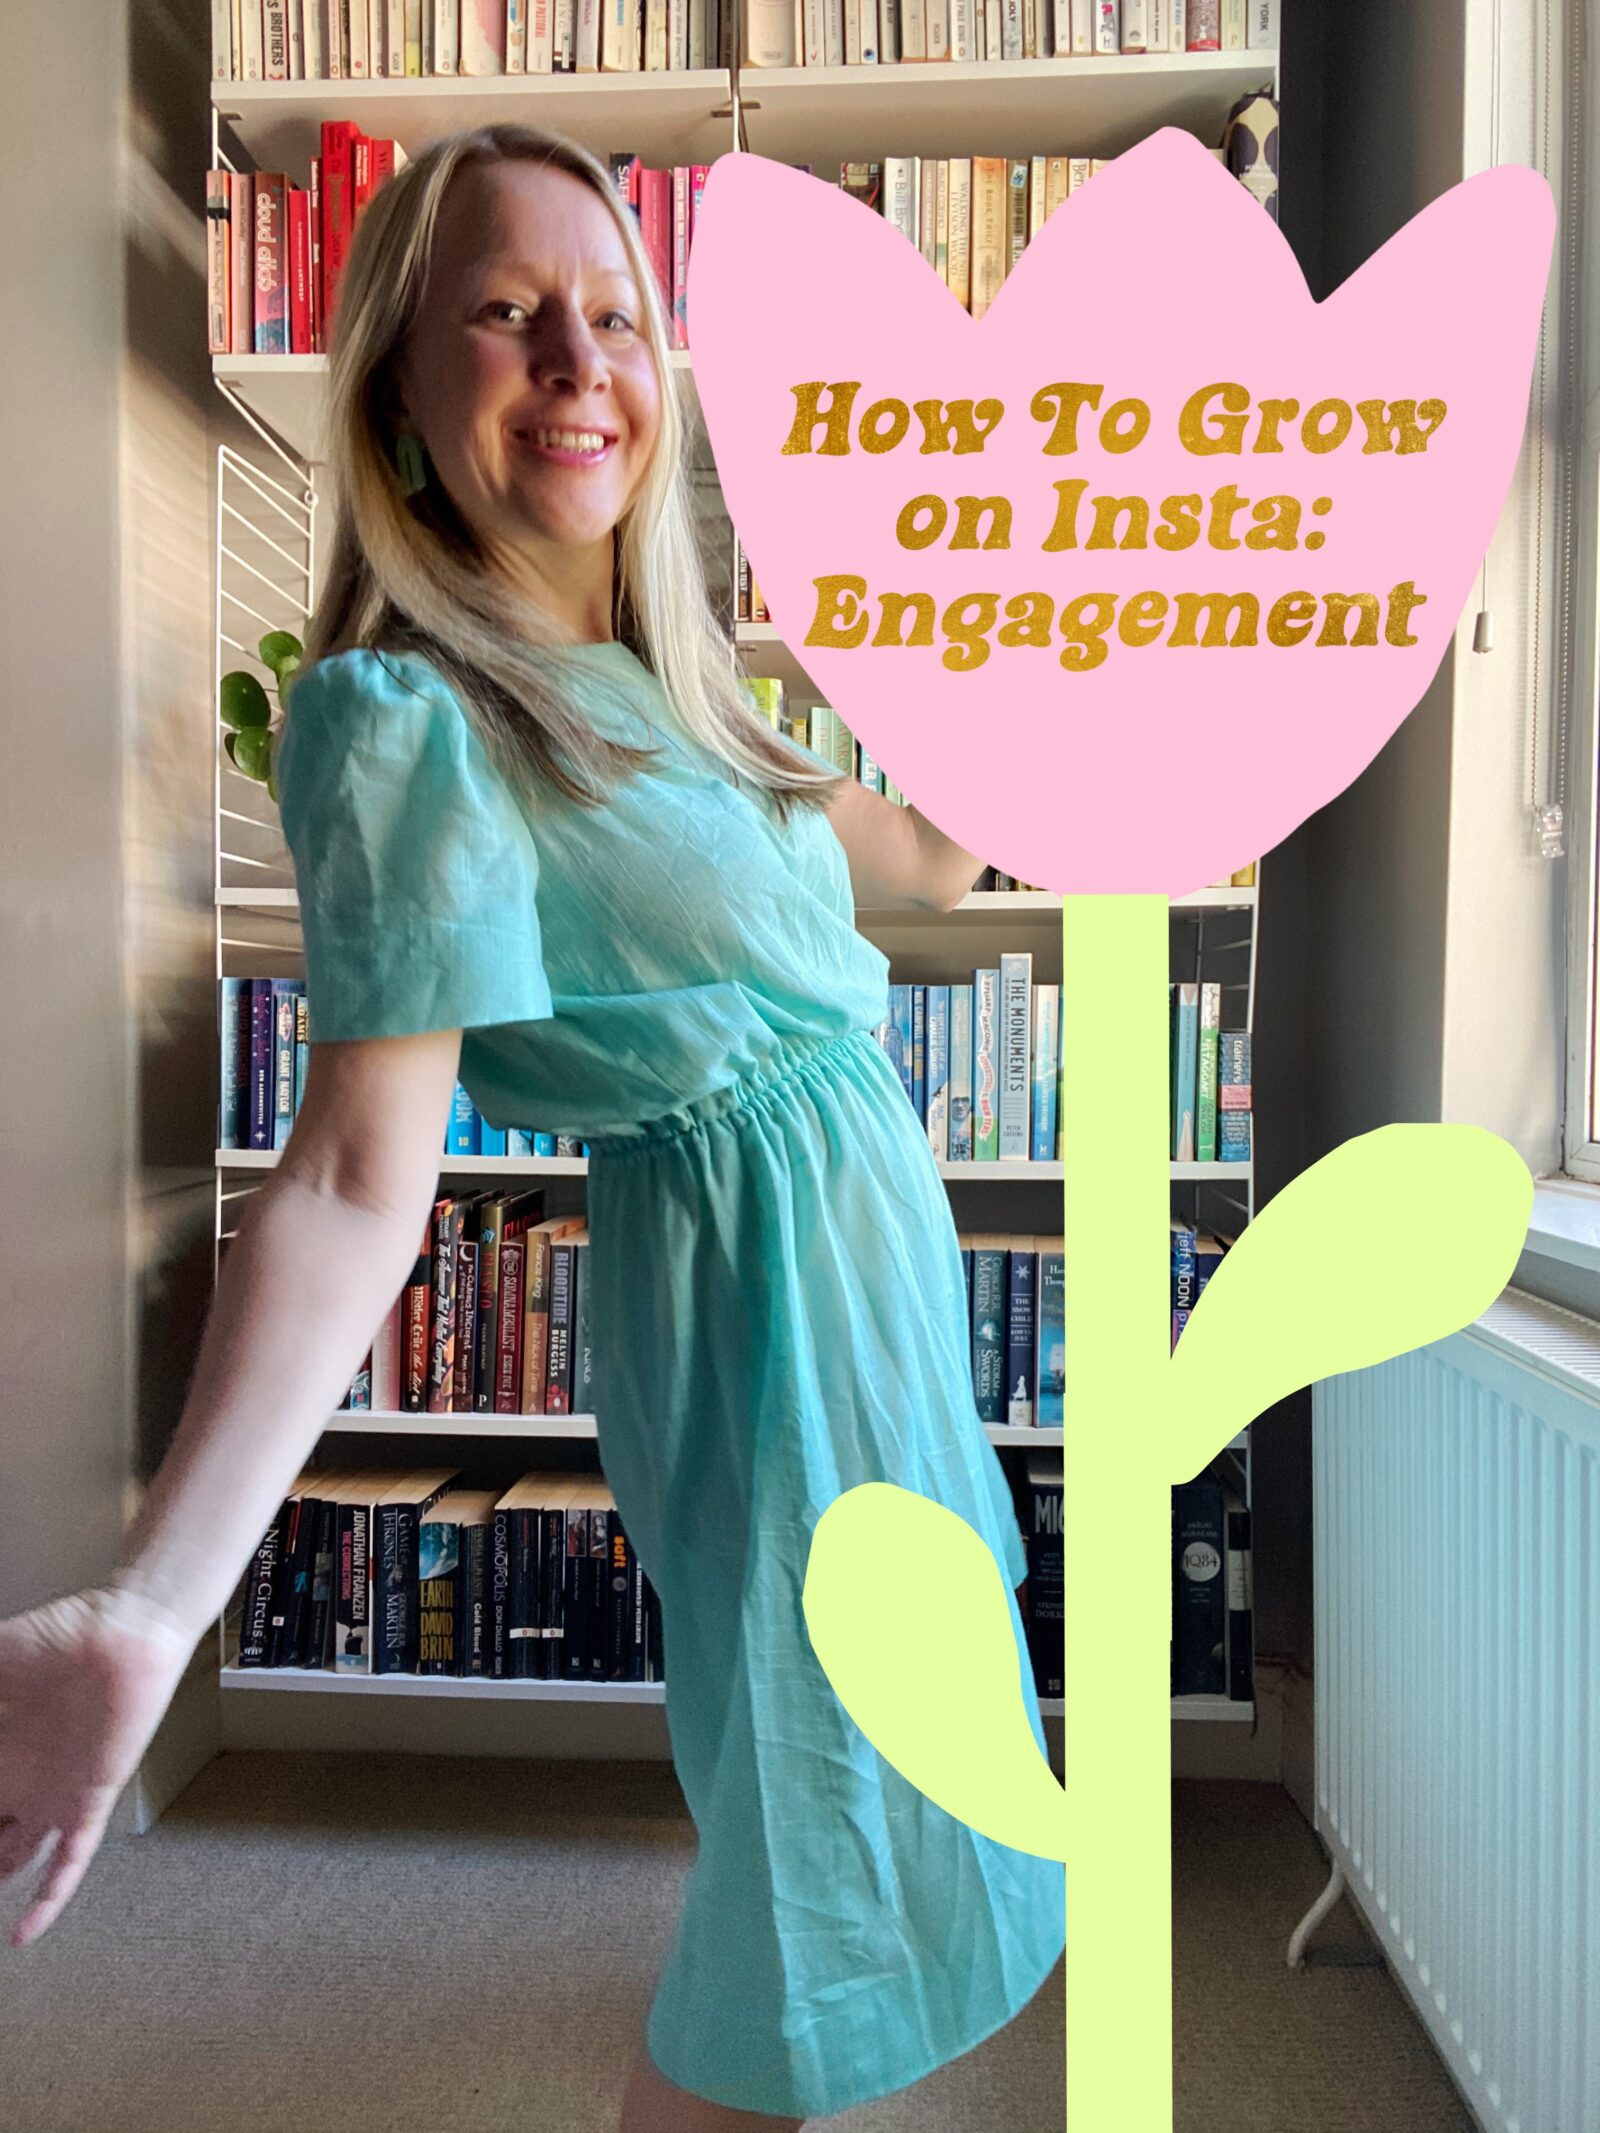 How to grow on Instagram: Engagement.